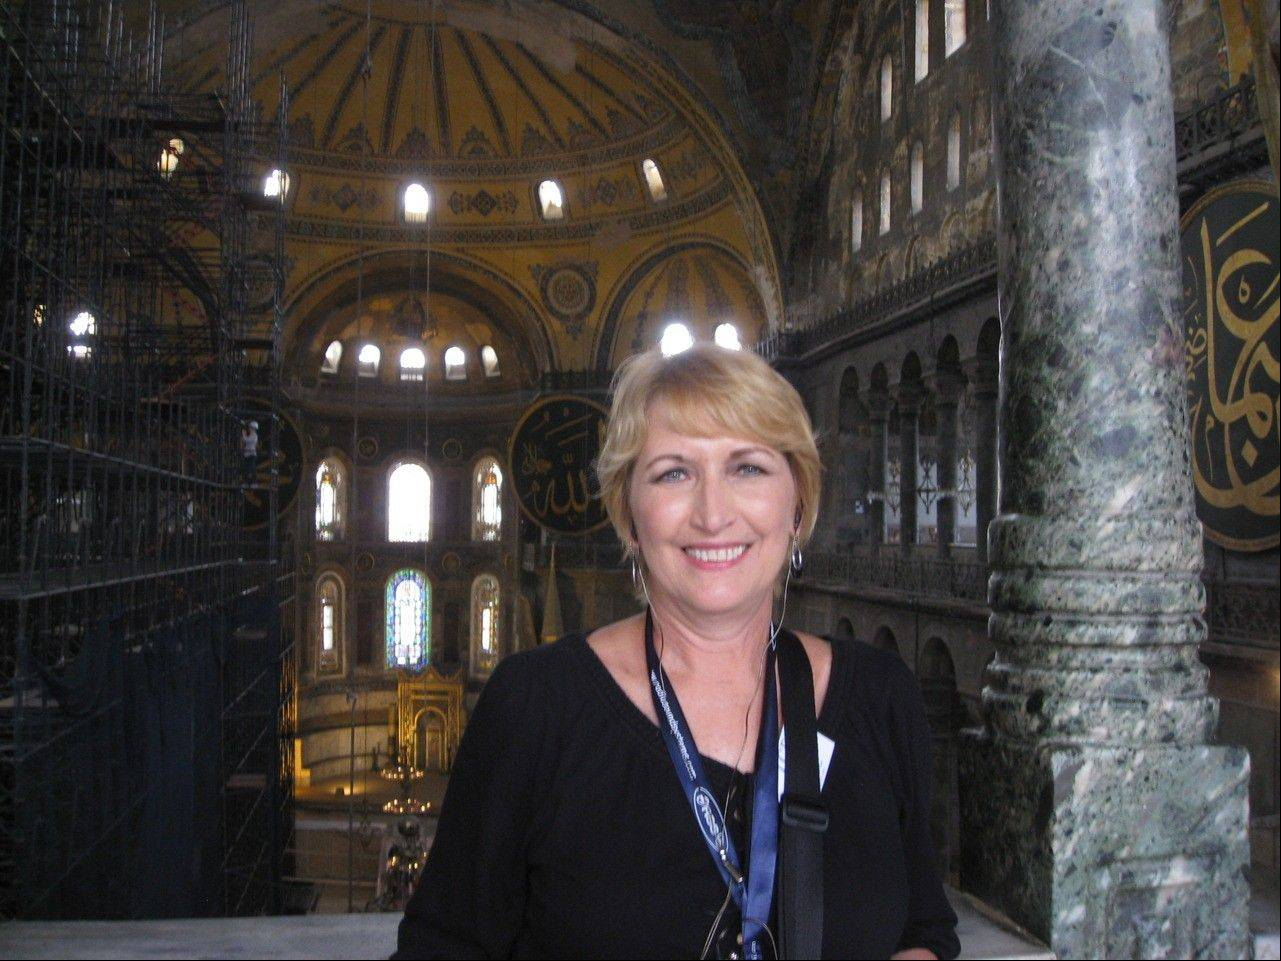 Chris LaRue smiles from the Hagia Sophia, which has gone from a church to a mosque to a museum over the centuries. LaRue, an Elgin High School teacher, created a lesson about sacred spaces after a trip to Turkey this summer.